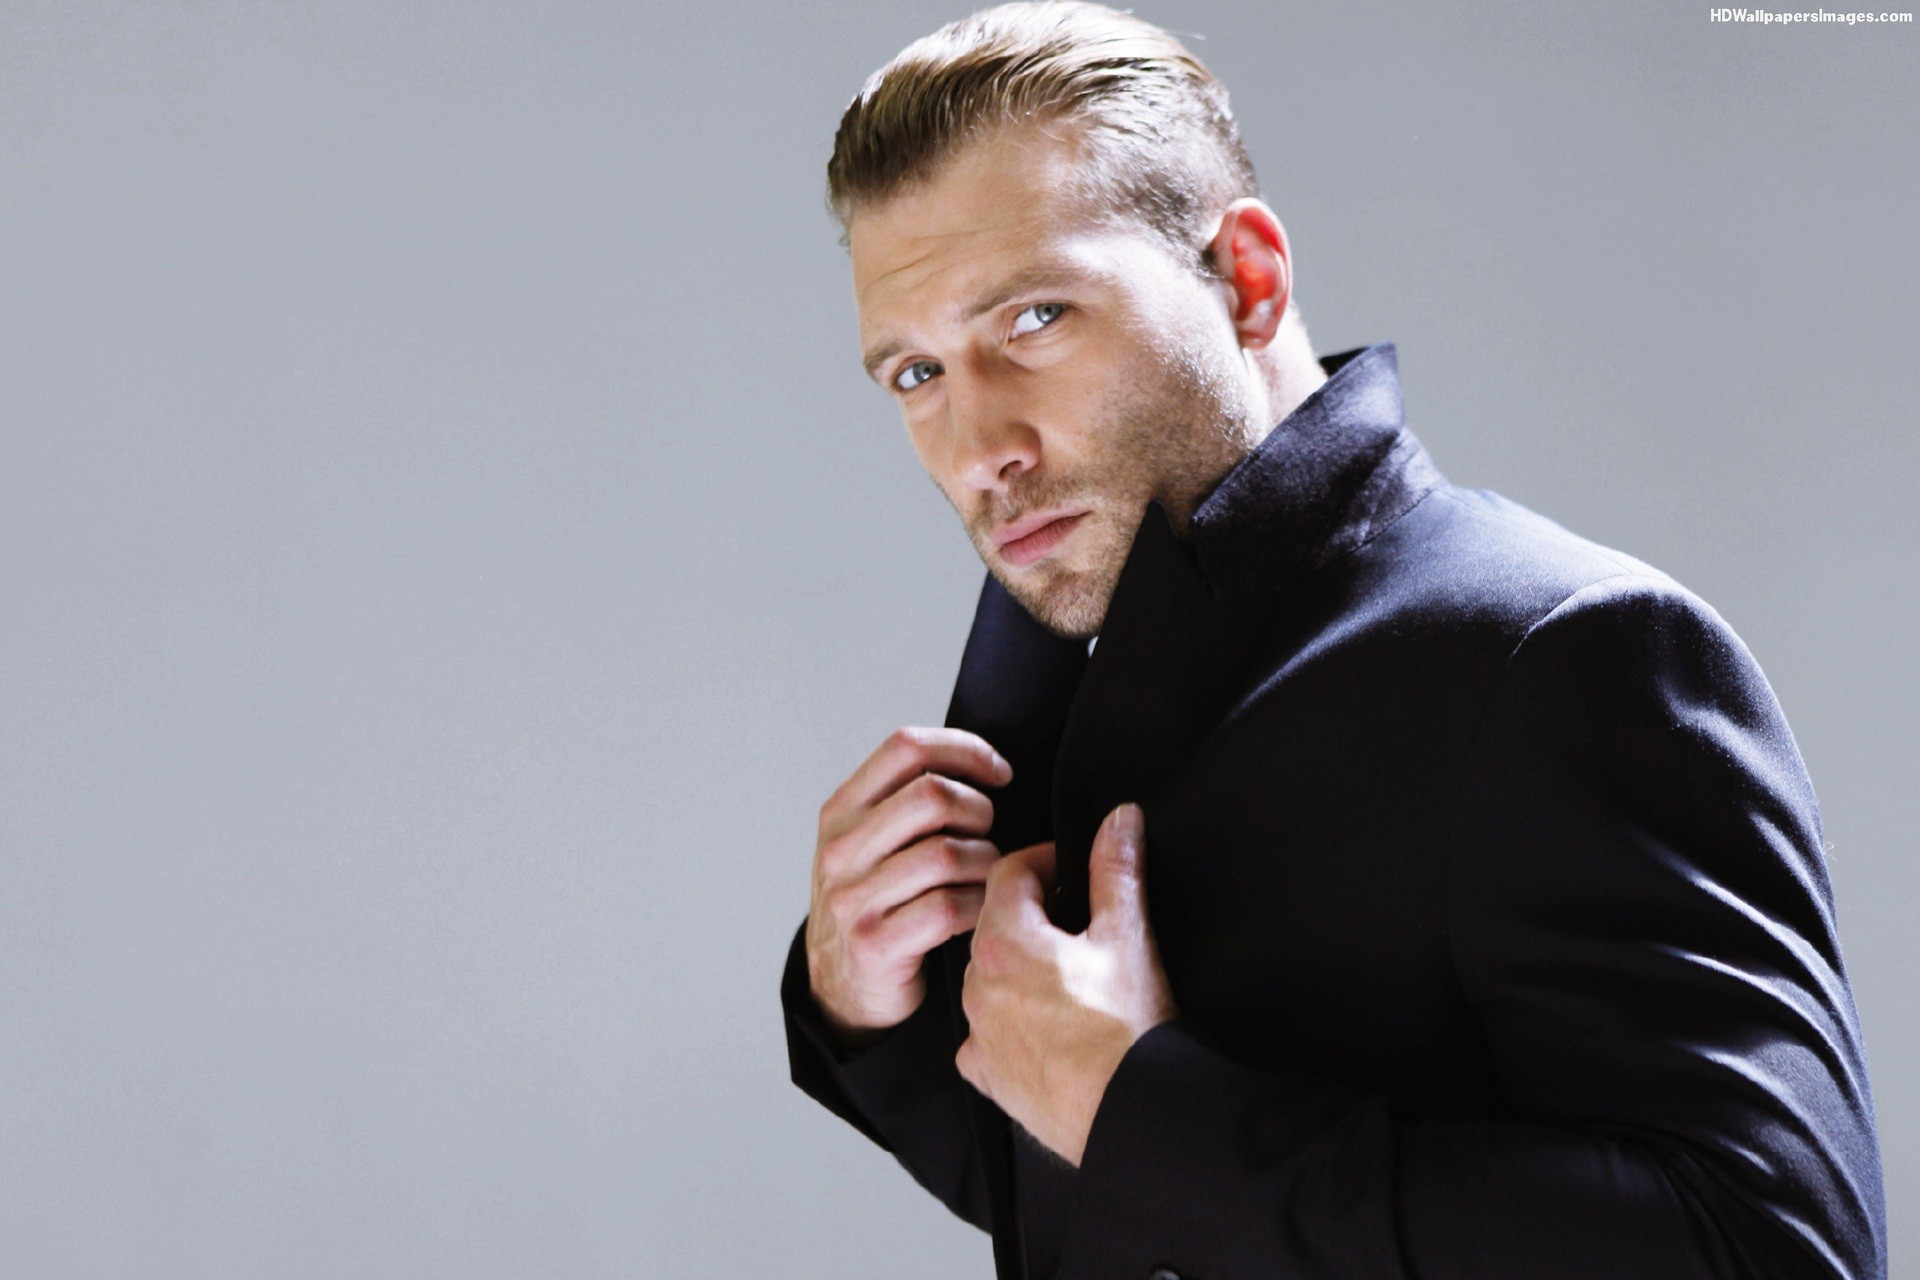 Jai Courtney Wallpapers High Resolution and Quality Download